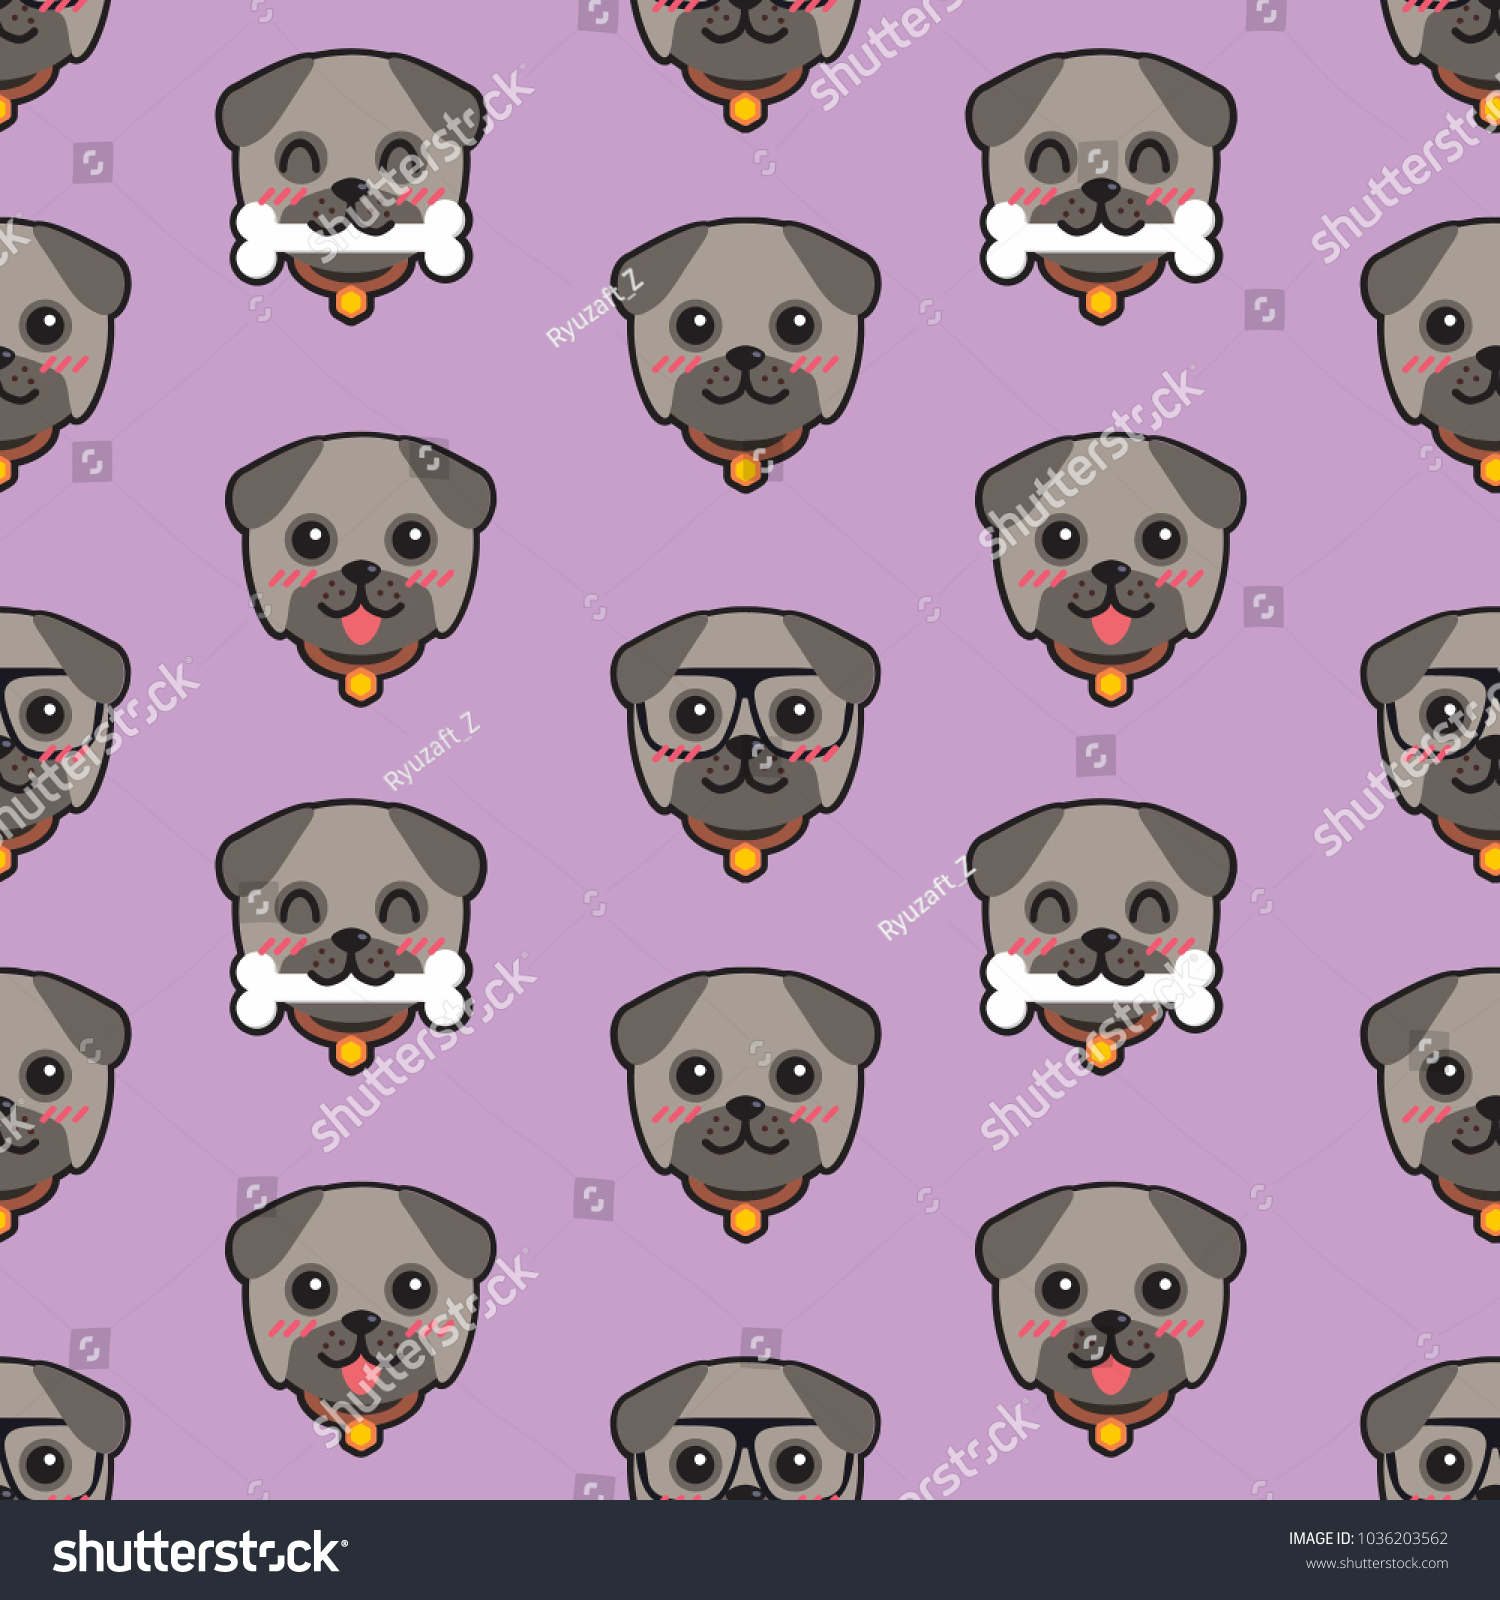 Download Pastel Anime Adorable Dog - stock-vector-seamless-cute-dog-puppy-happy-pattern-wallpaper-wrapper-cartoon-vector-design-illustration-template-1036203562  2018_865717  .jpg